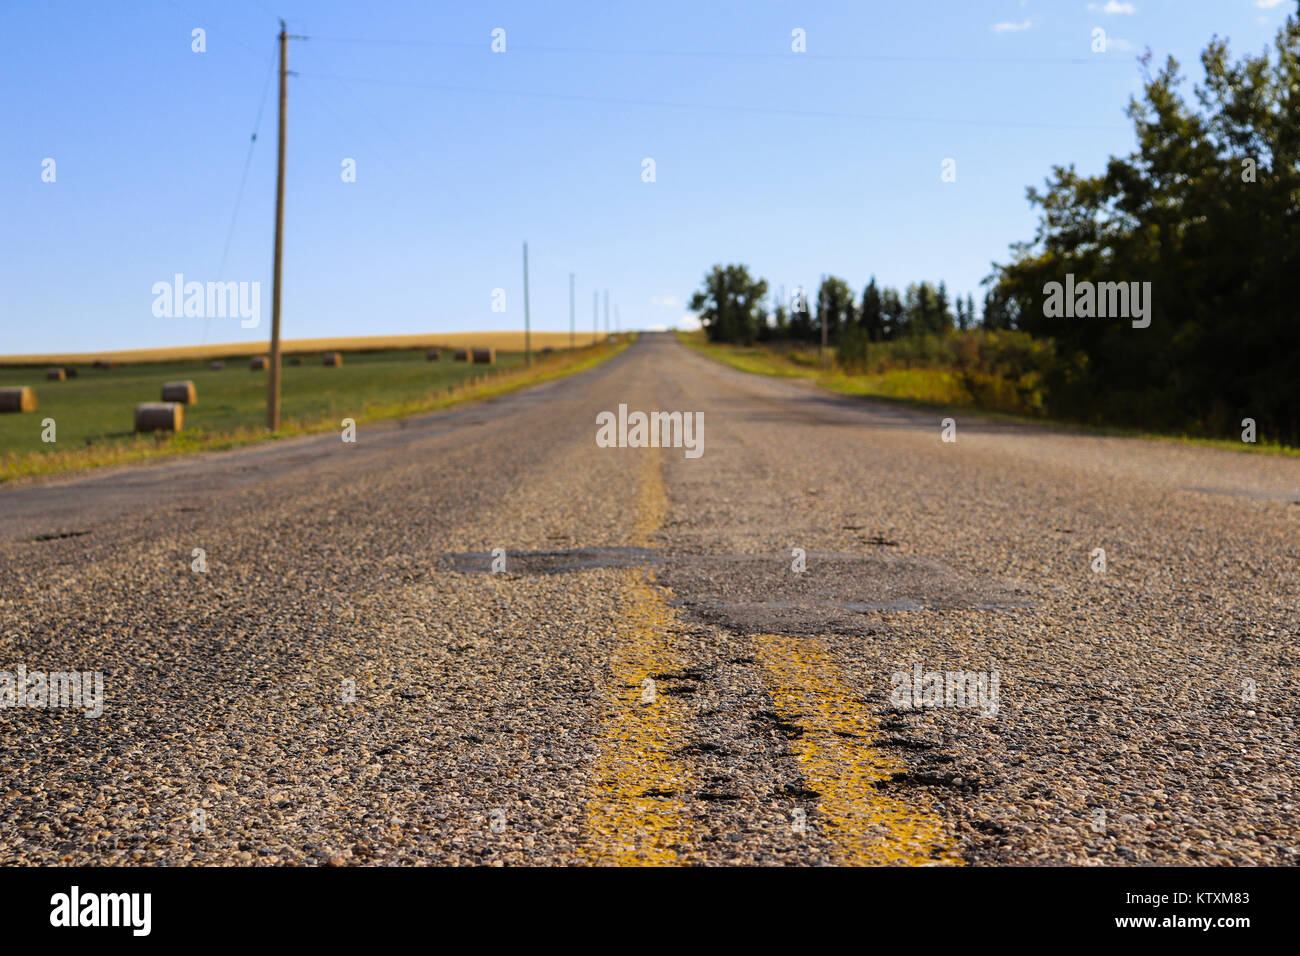 Old road going into the distance with a farm to the side and a blue sky above - Stock Image